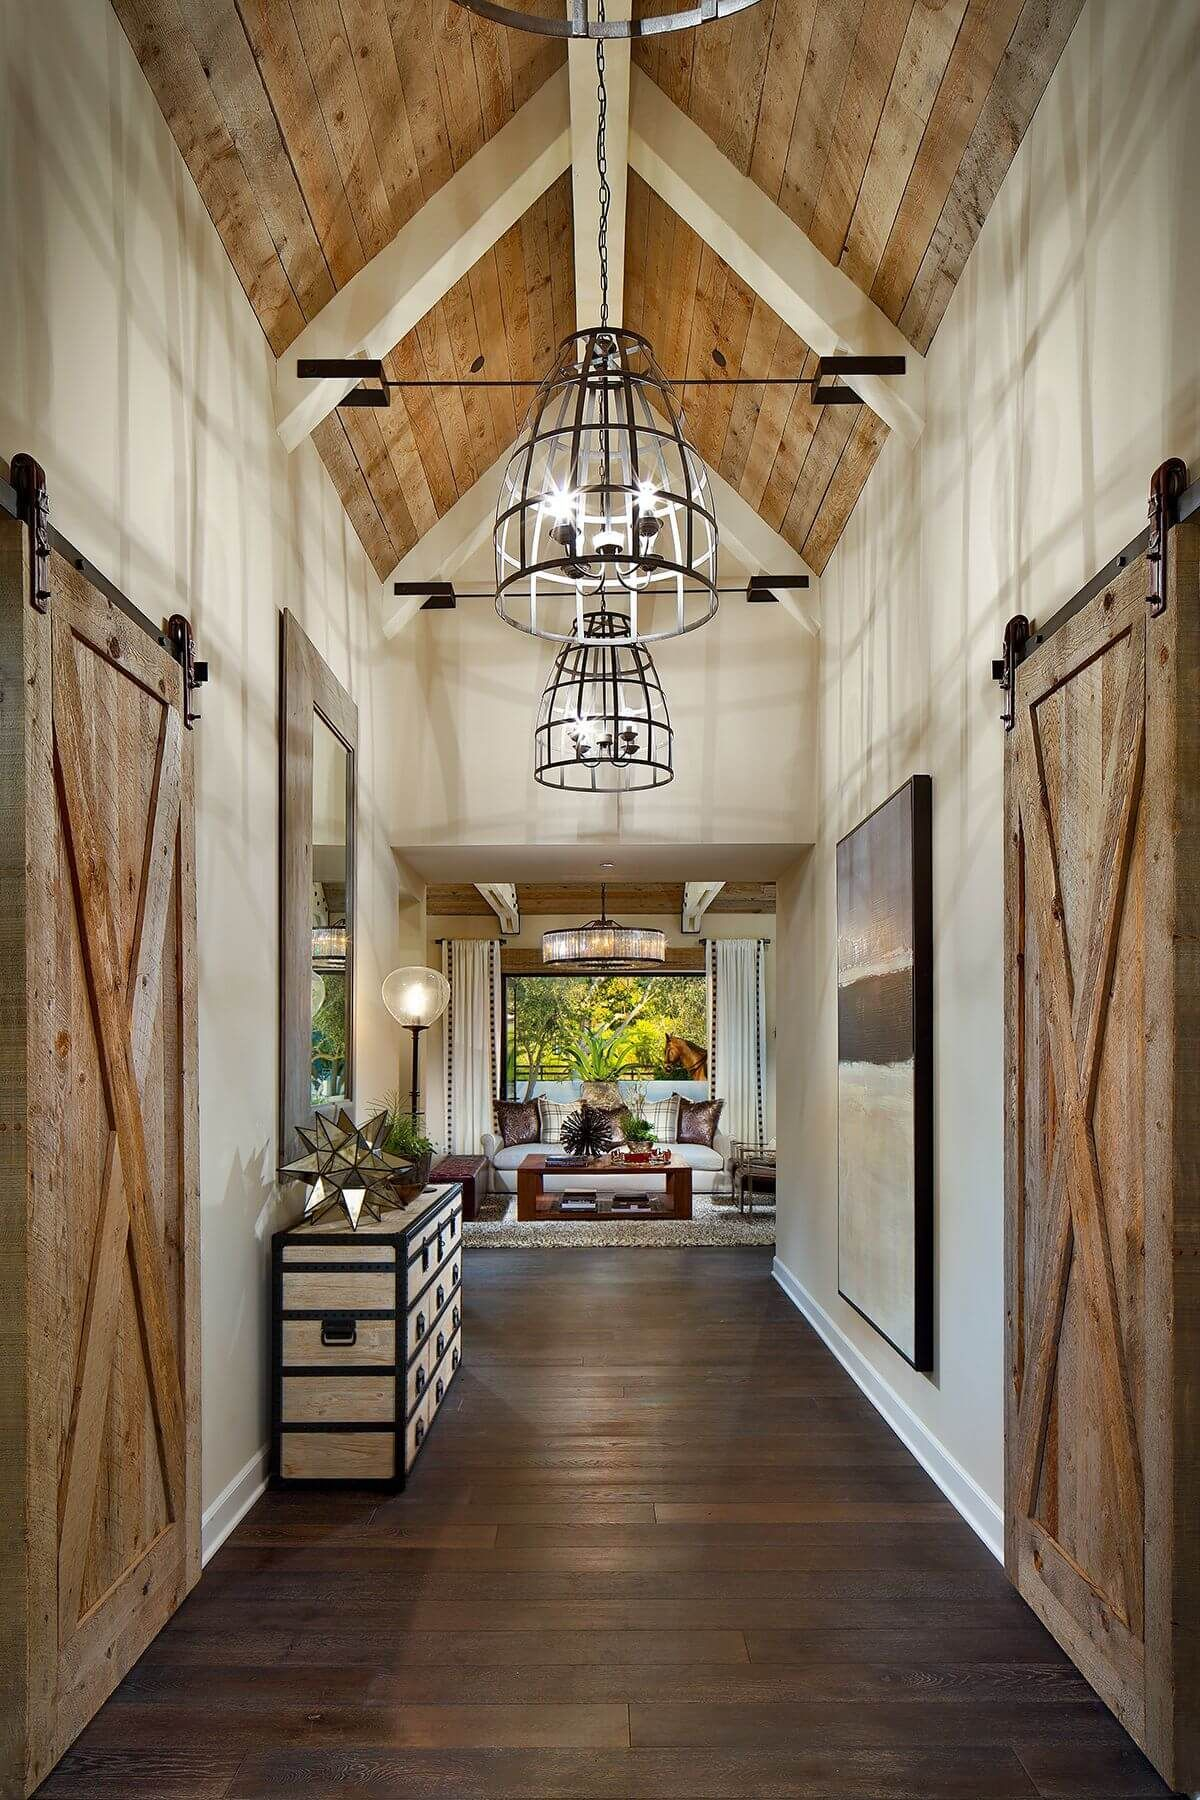 Https://homebnc.com/best-rustic-farmhouse-interior-design